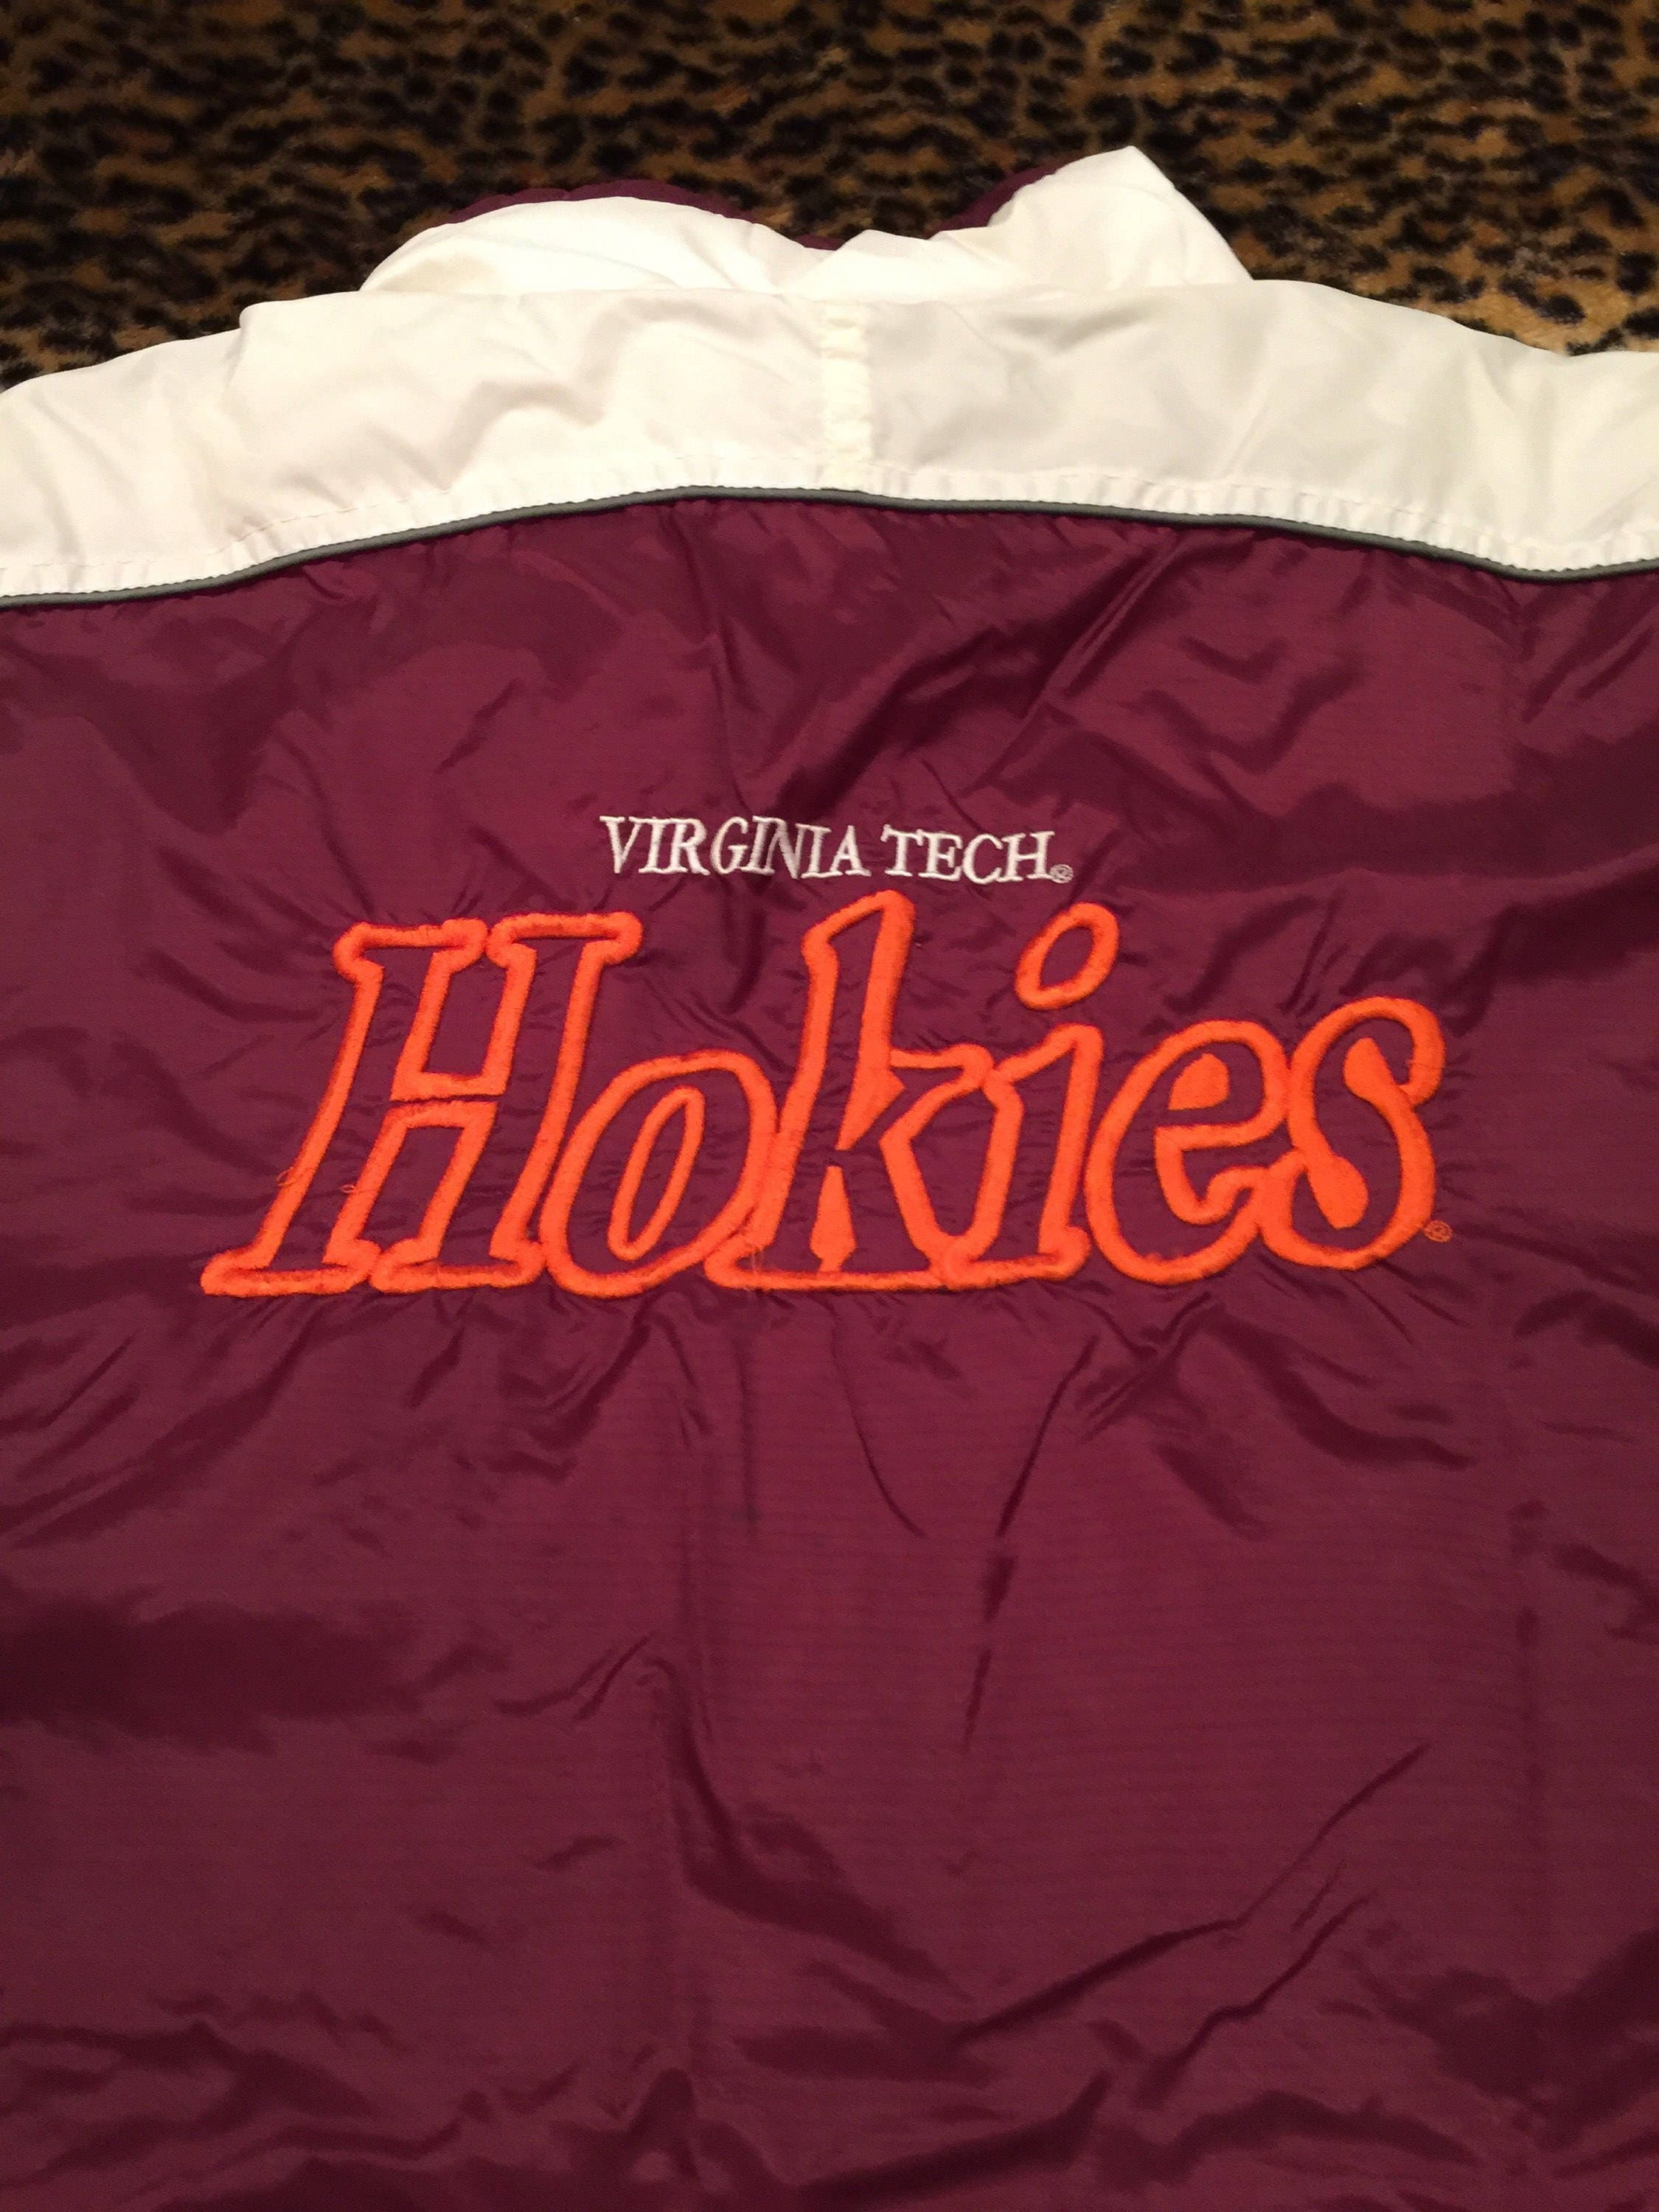 Virginia Tech Hokies zip up jacket